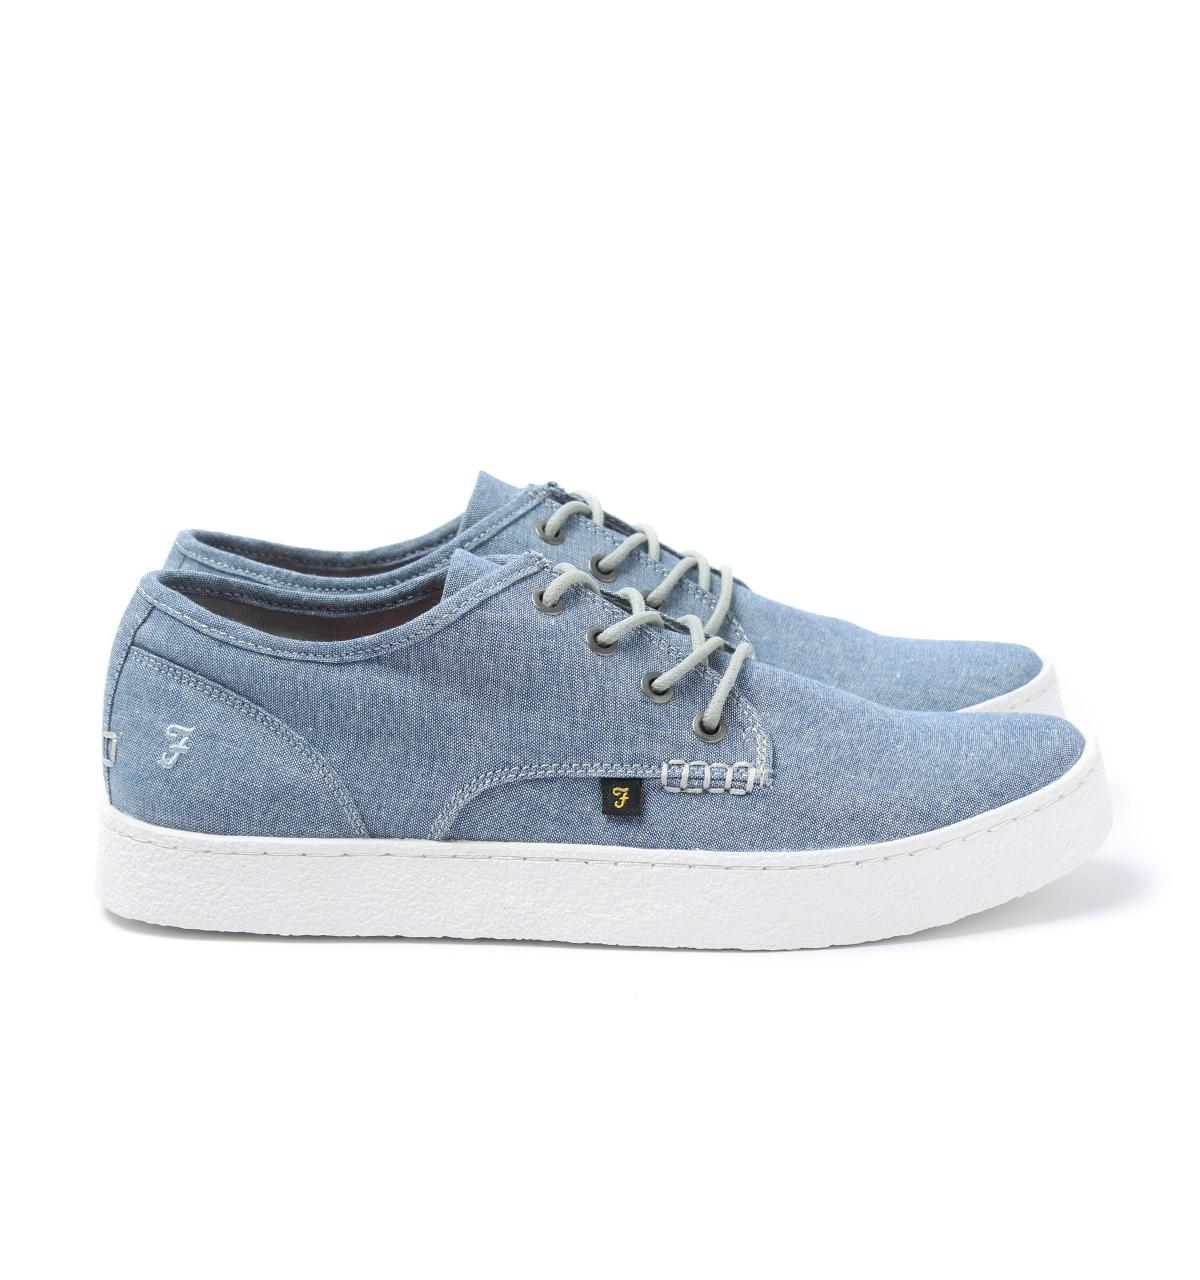 Farah Vintage Blue Chambray Canvas Trainers-UK 7 uJ94q1